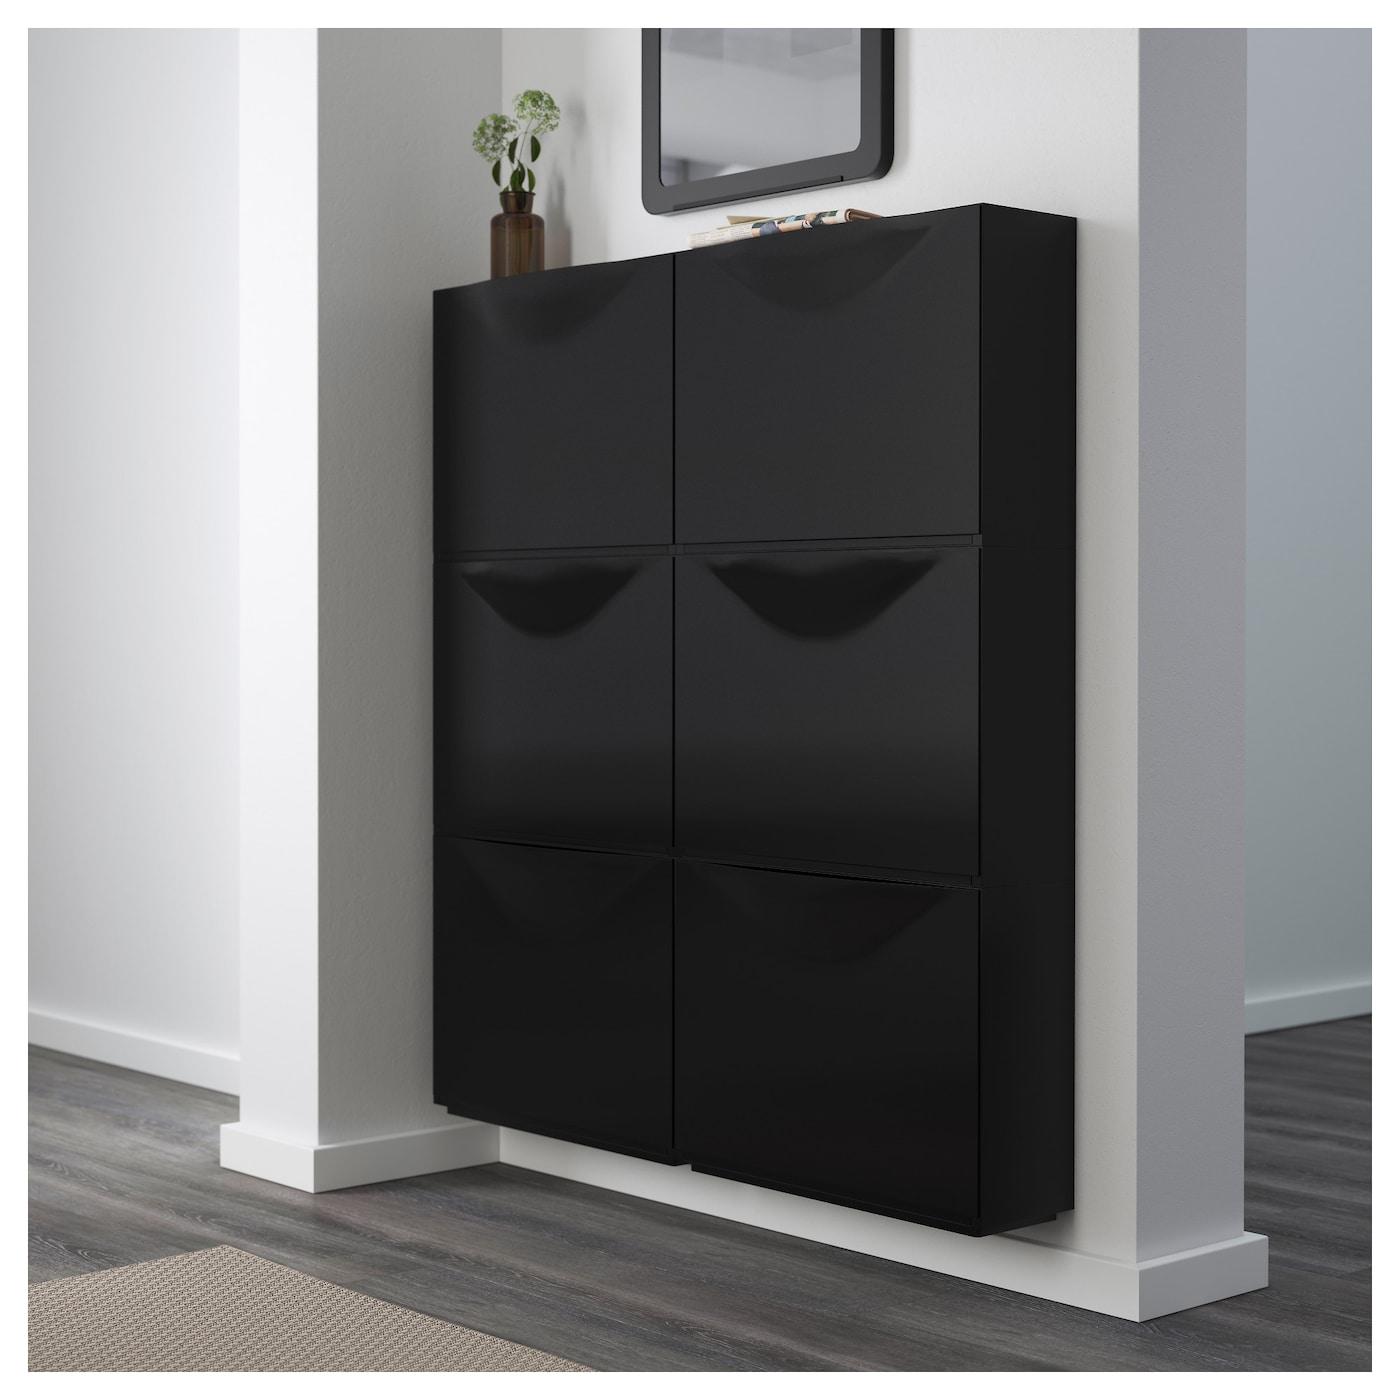 trones armoire chaussures rangement noir 51x39 cm ikea. Black Bedroom Furniture Sets. Home Design Ideas